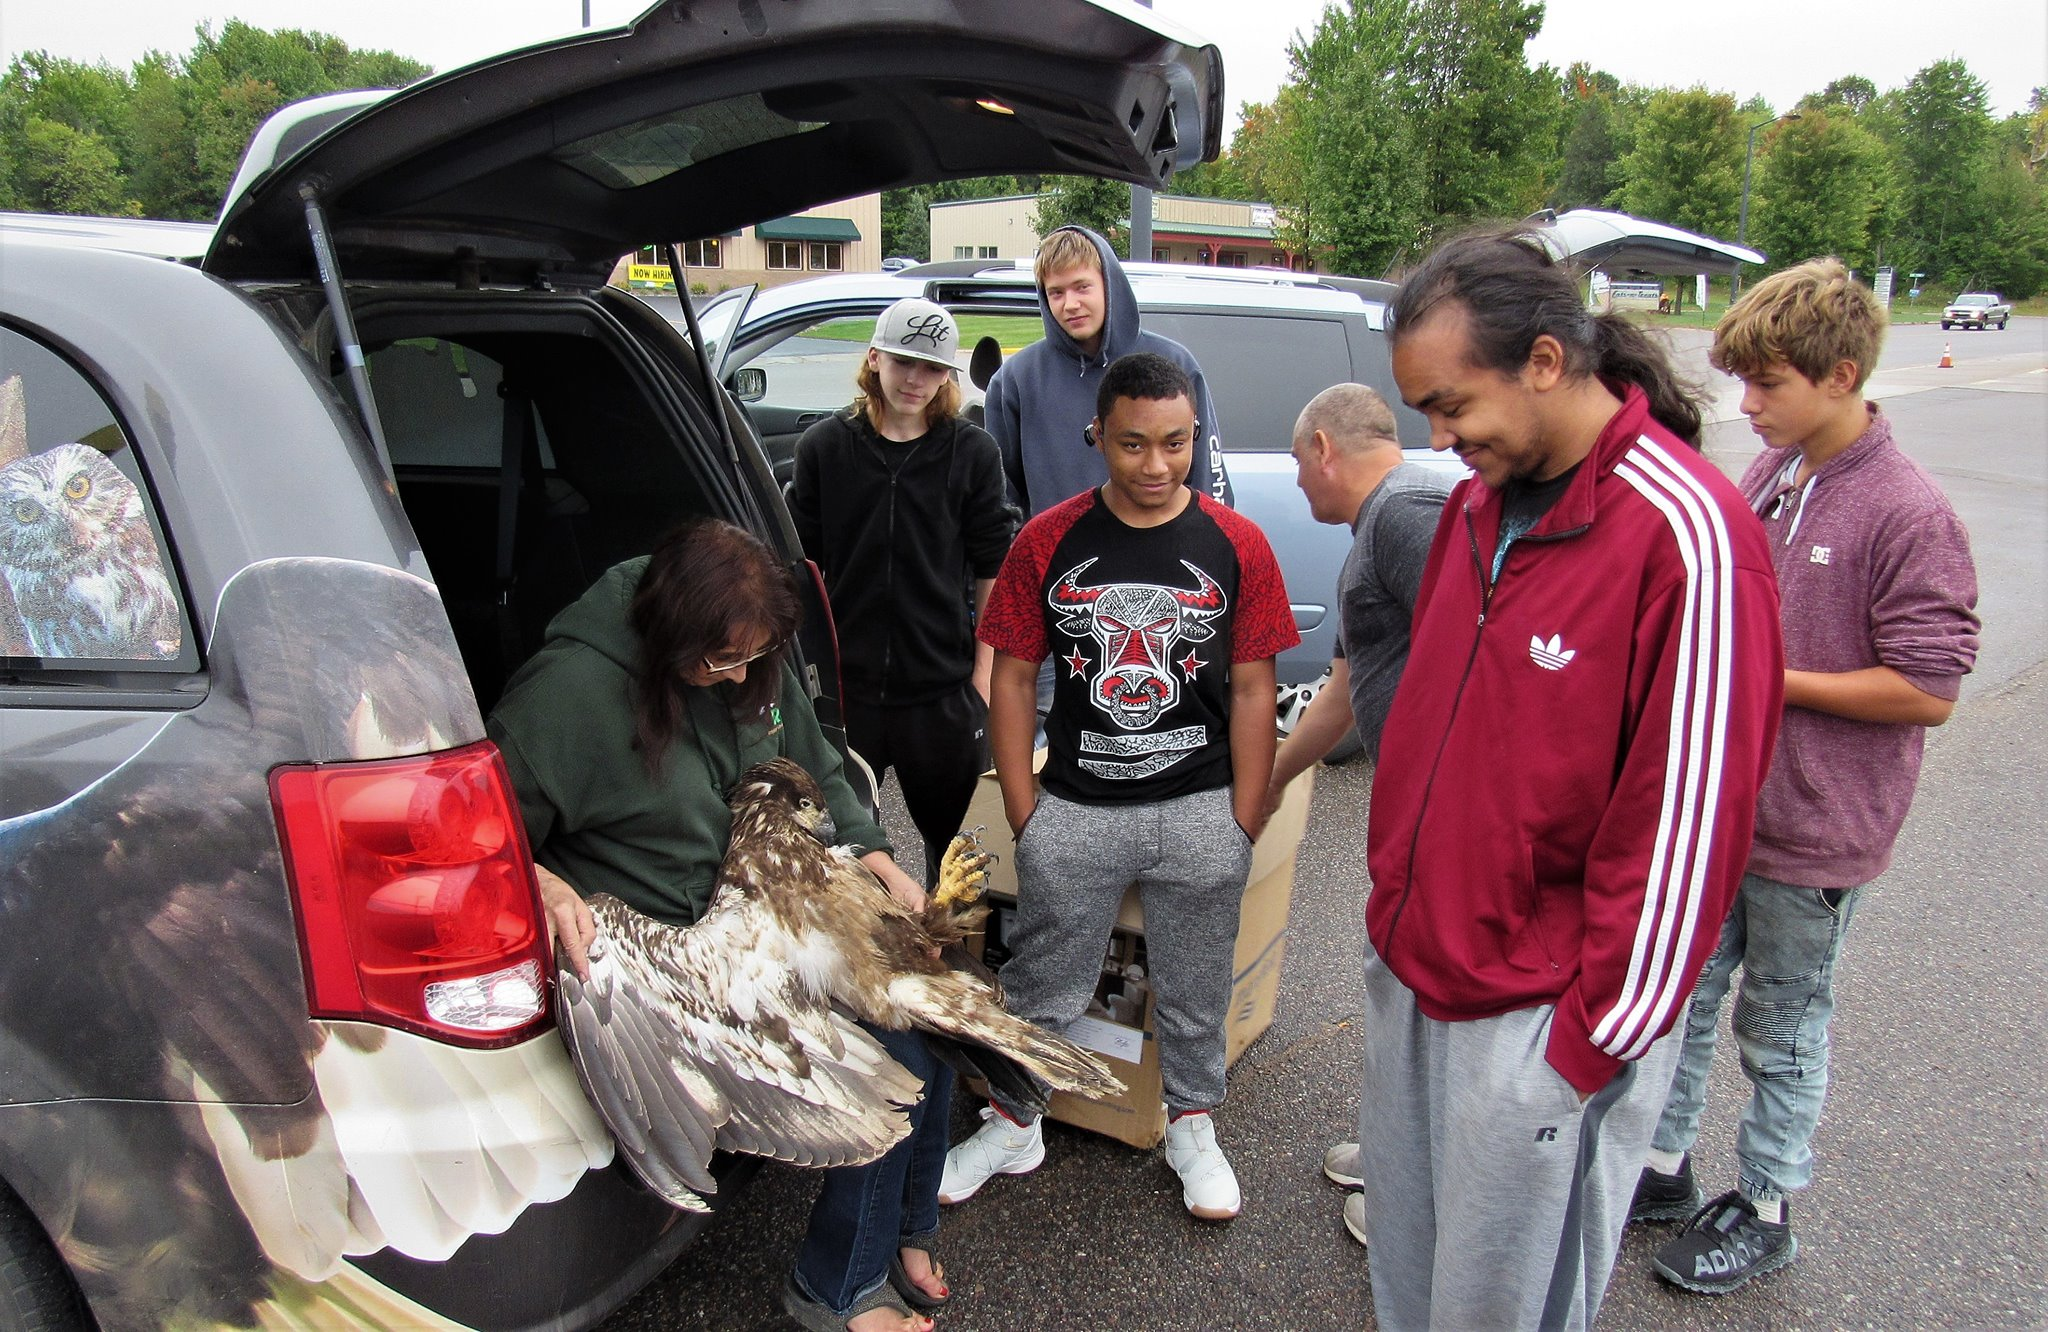 Getting a good look at the eagle after they transported her.